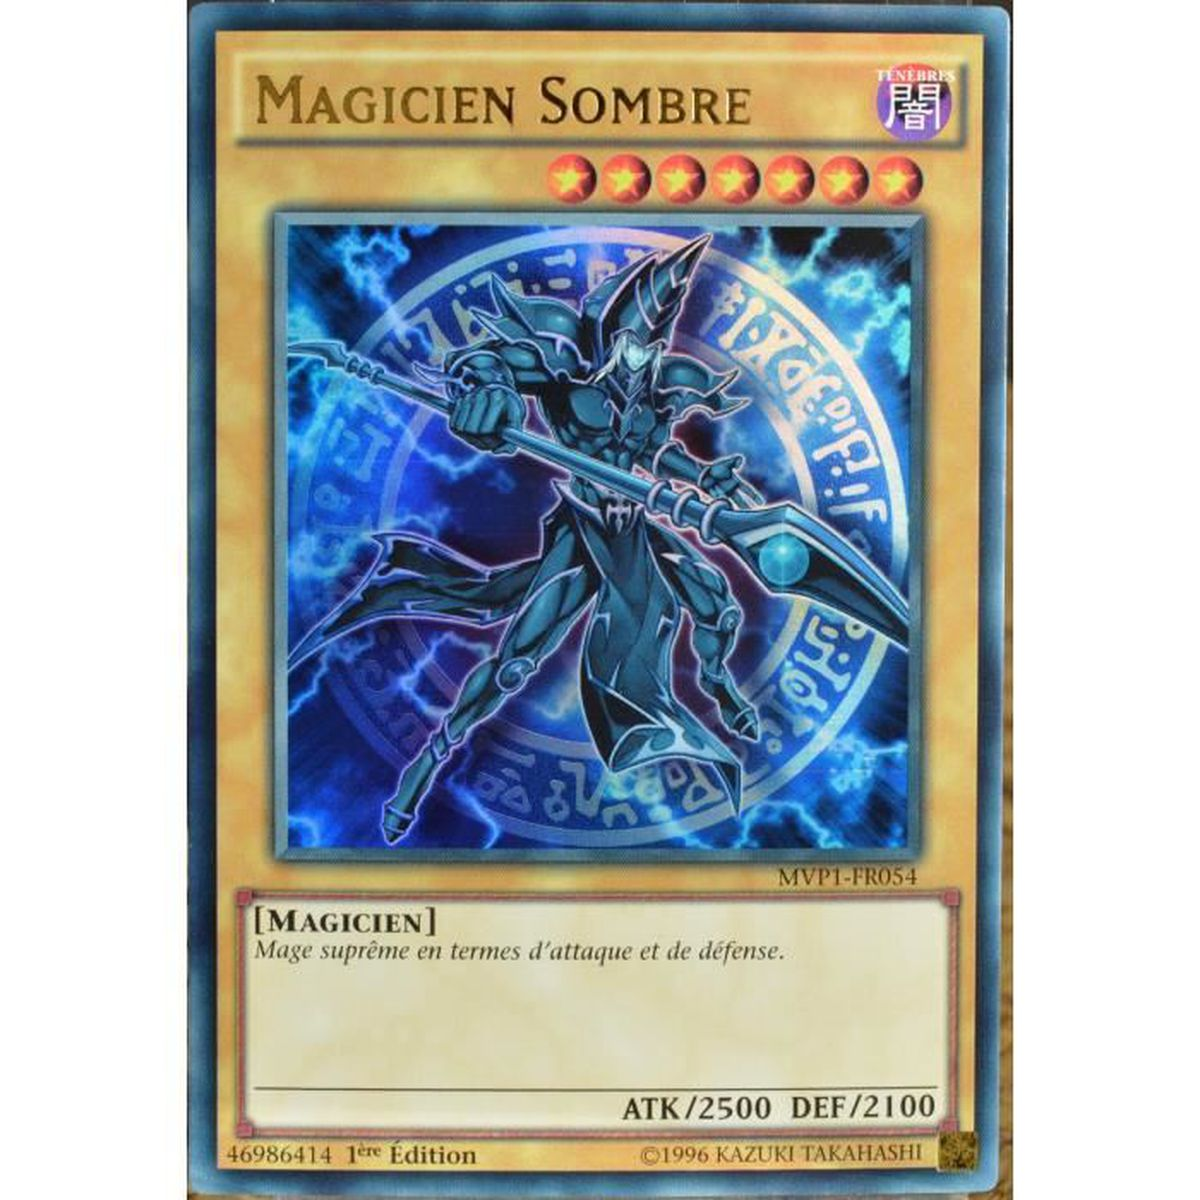 Yu-Gi-Oh MVP1-FRS54 Magicien Sombre